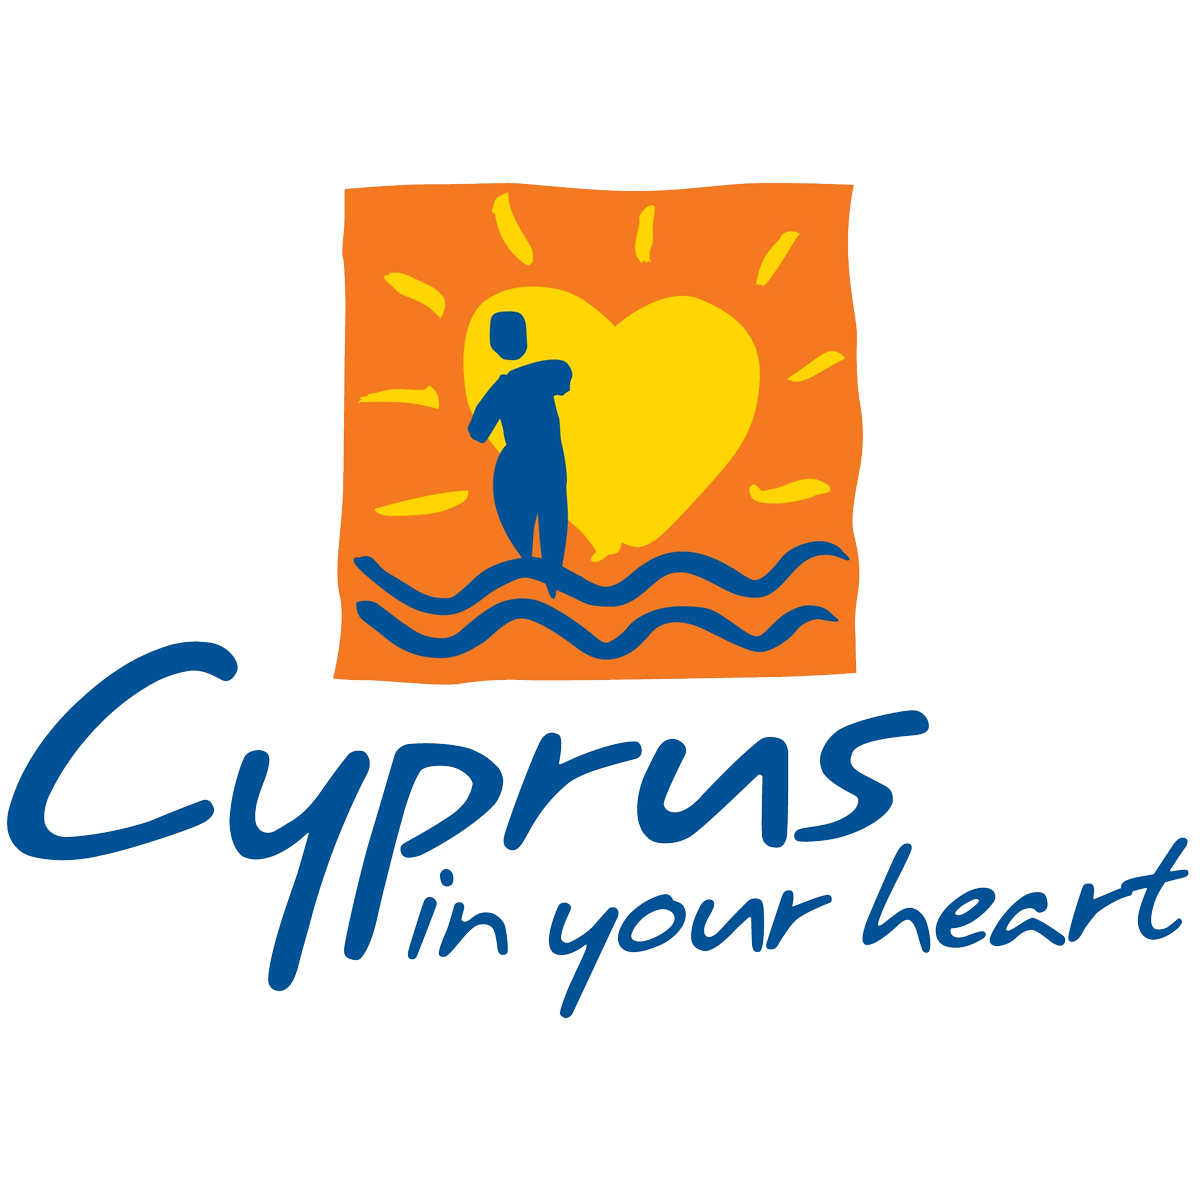 National Tourism Organisation of Cyprus